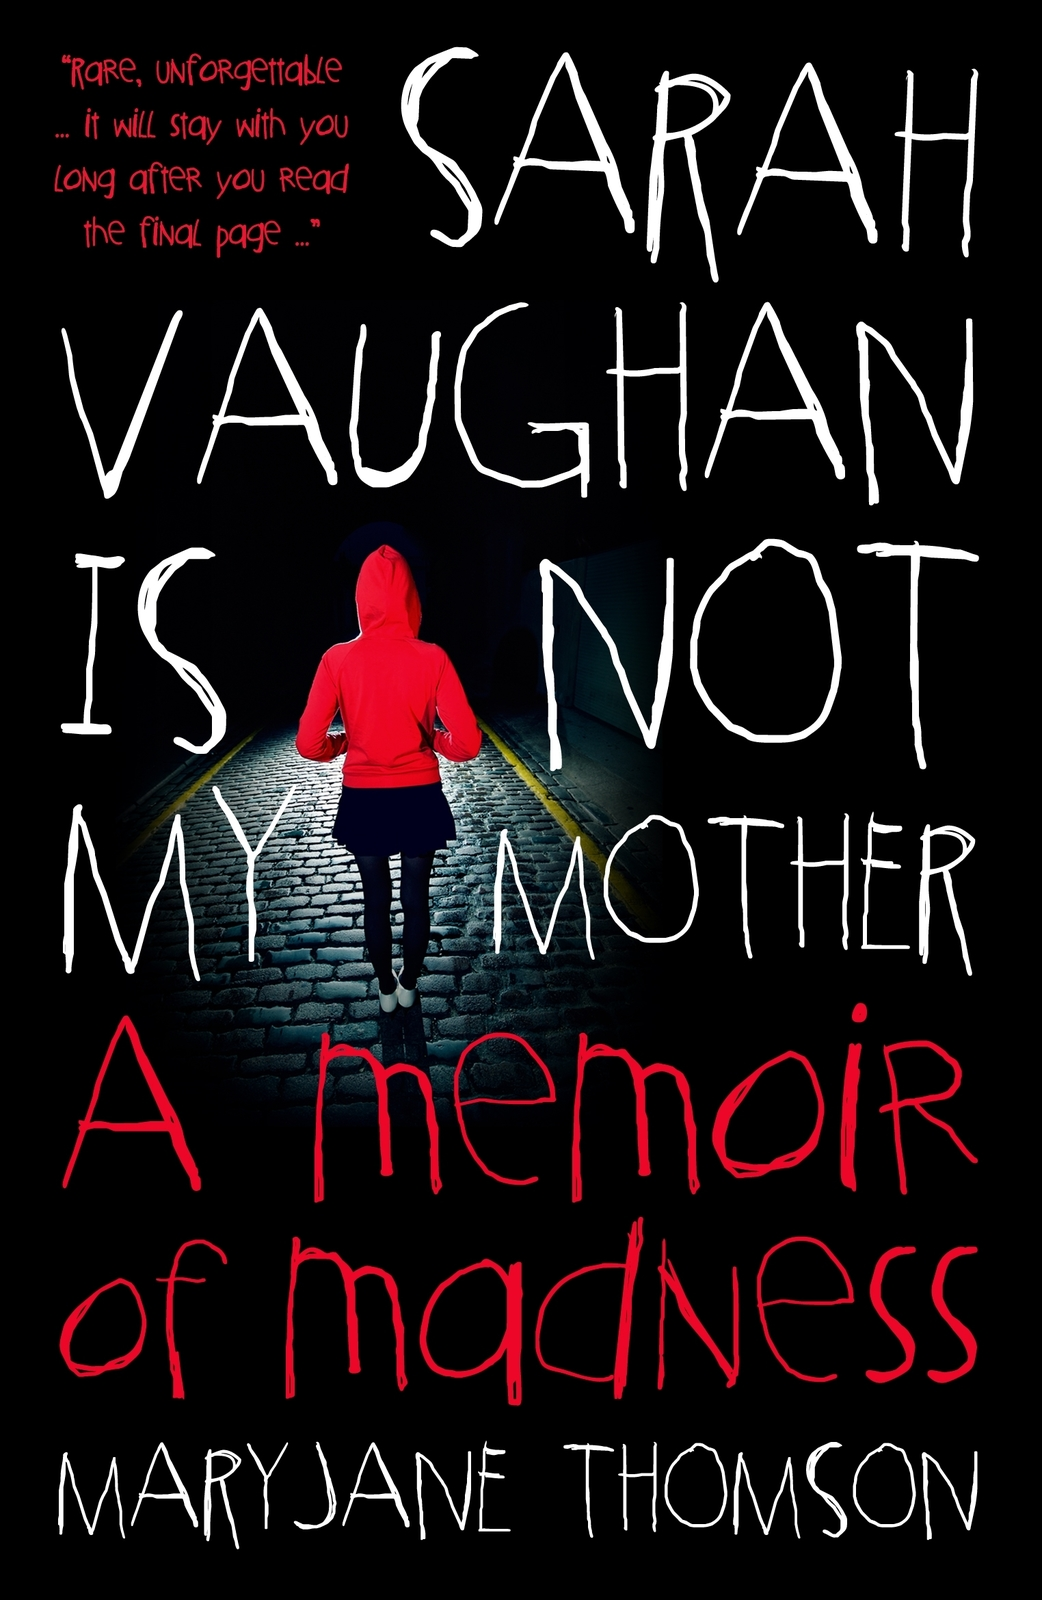 Sarah Vaughan Is Not My Mother: A Memoir Of Madness by MaryJane Thomson image